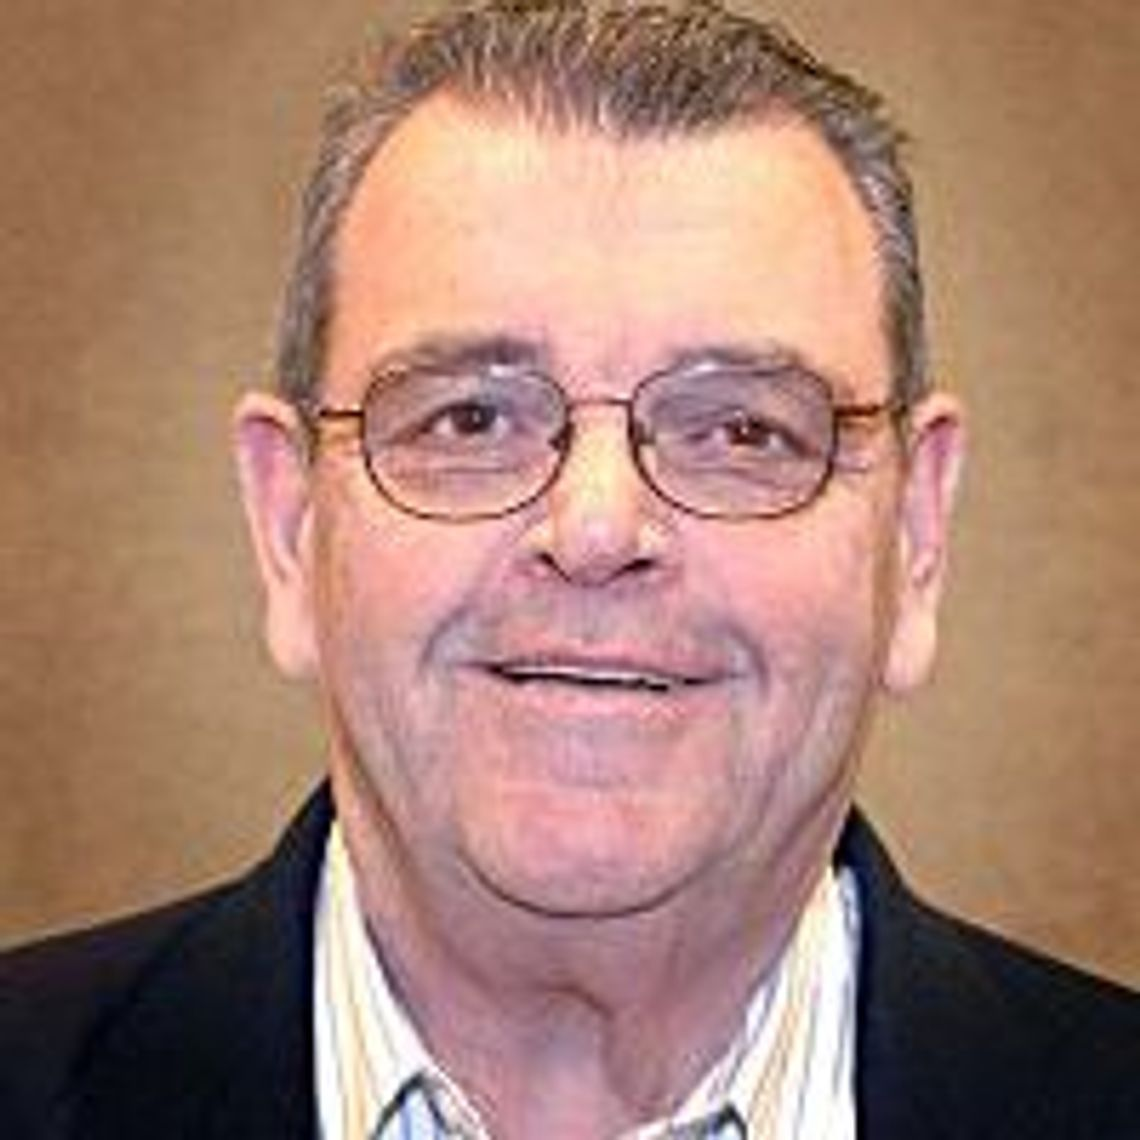 Yonkers Raceway official Joh Brennan passed away from the coronavirus.